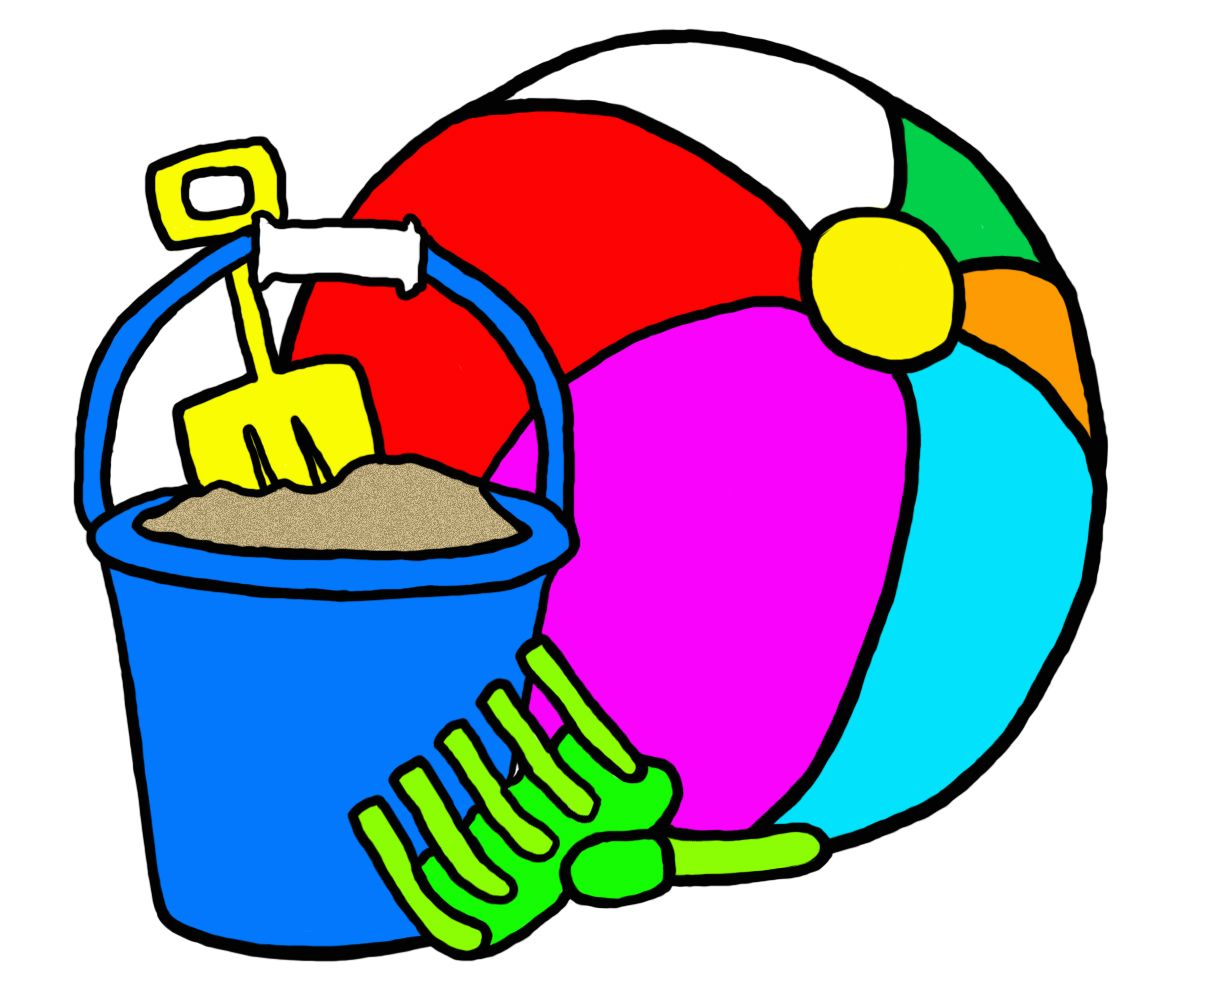 August Clipart - Google Search